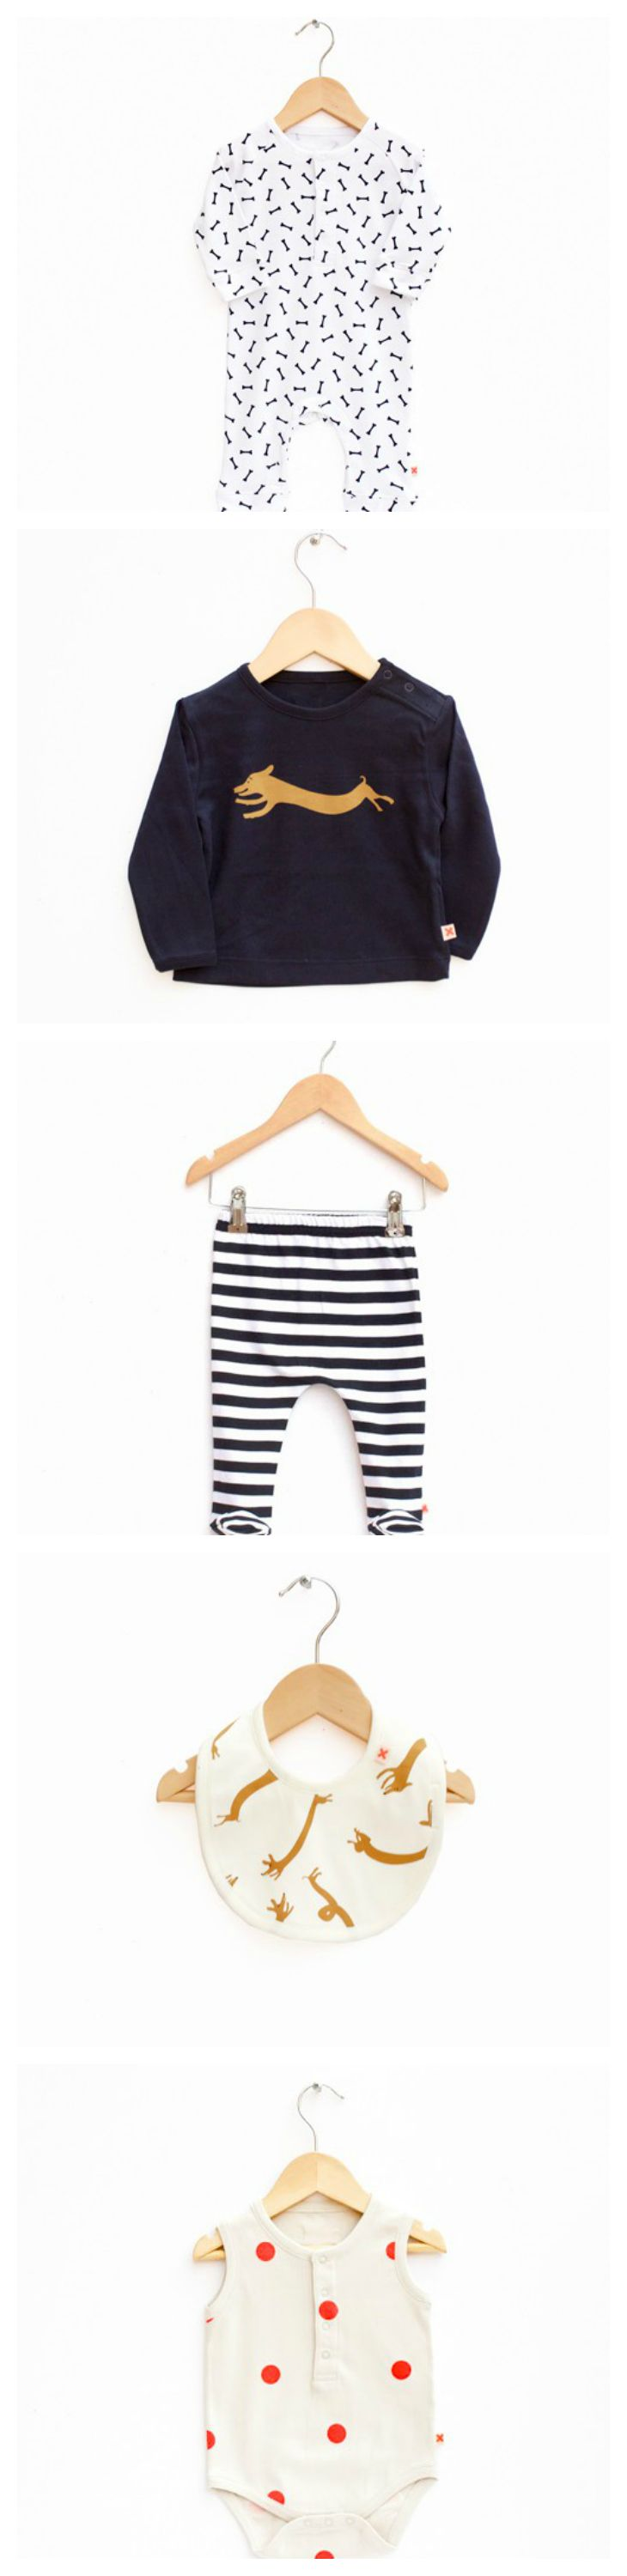 tiny cottons- cute baby clothing